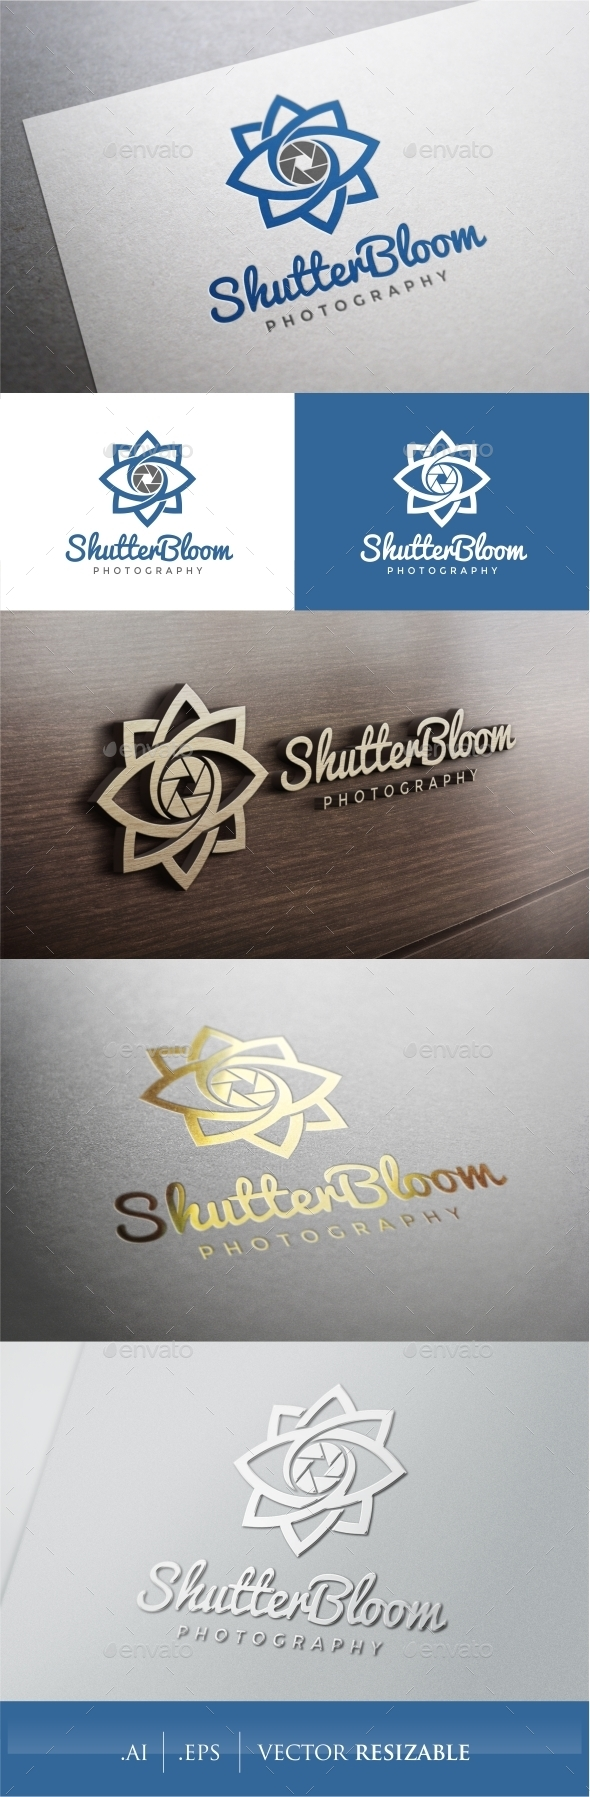 GraphicRiver Shutter Bloom Photography Logo 9374830